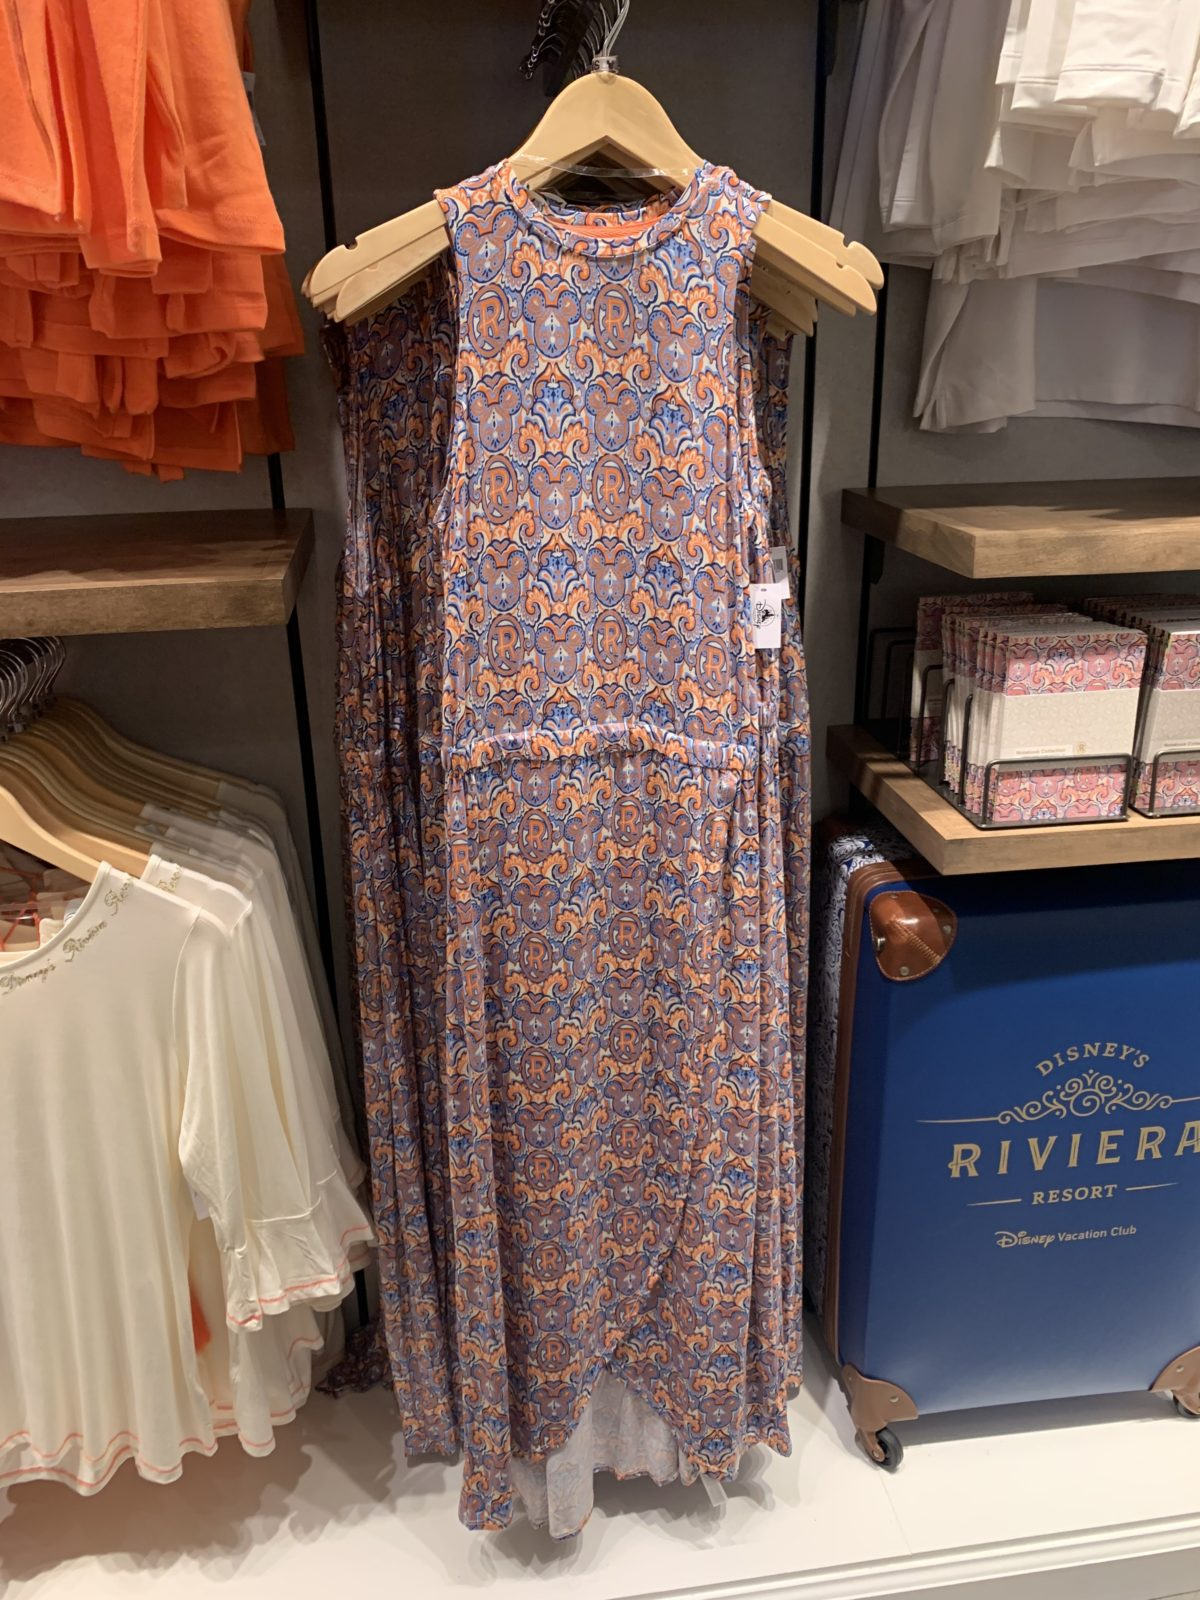 La Boutique Disney's Riviera Resort Merchandise